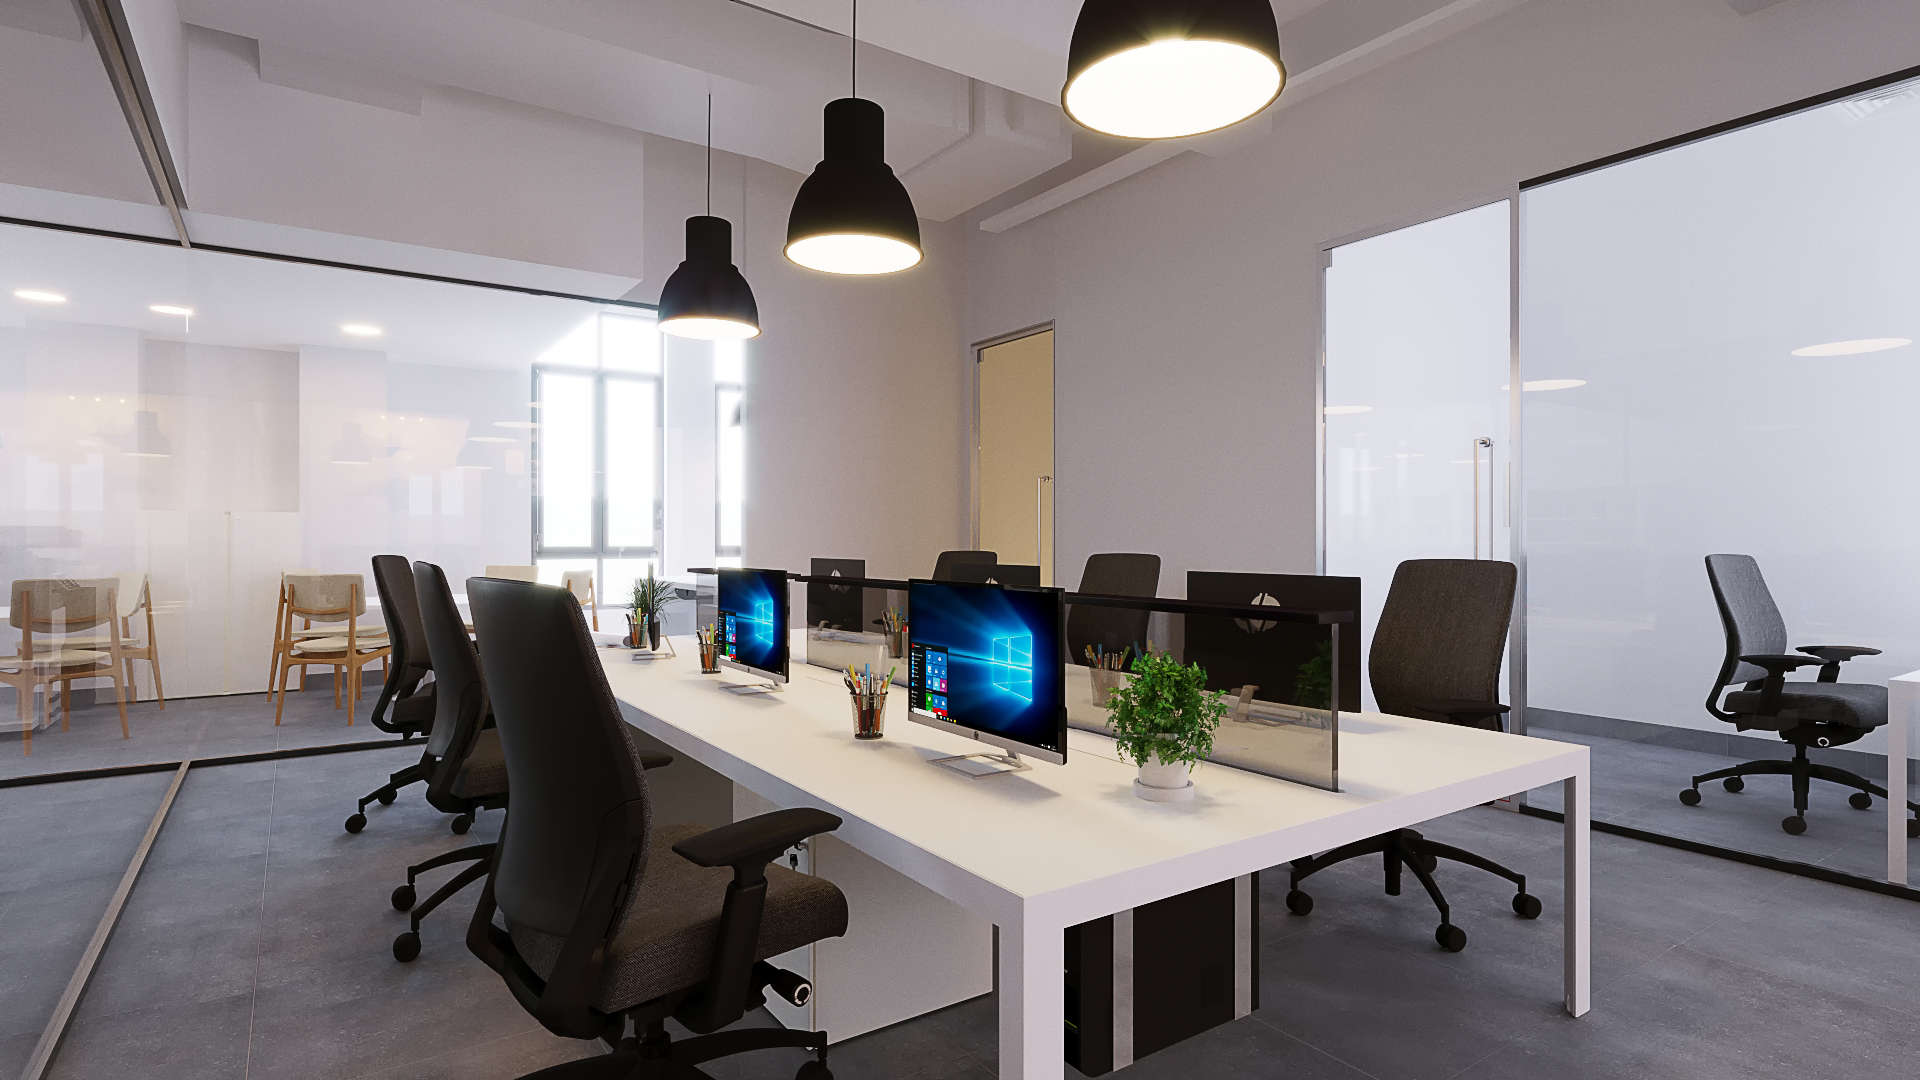 CAPTAIN   OMR 500/month - LEASED OUT   Enclosed, lockable office can accommodate teams of 2-7. Move-in ready, with desks, chairs, and a filing cabinet. This office has a private space for the captain and a store in addition to the main workstation.  Best for:  -Established teams